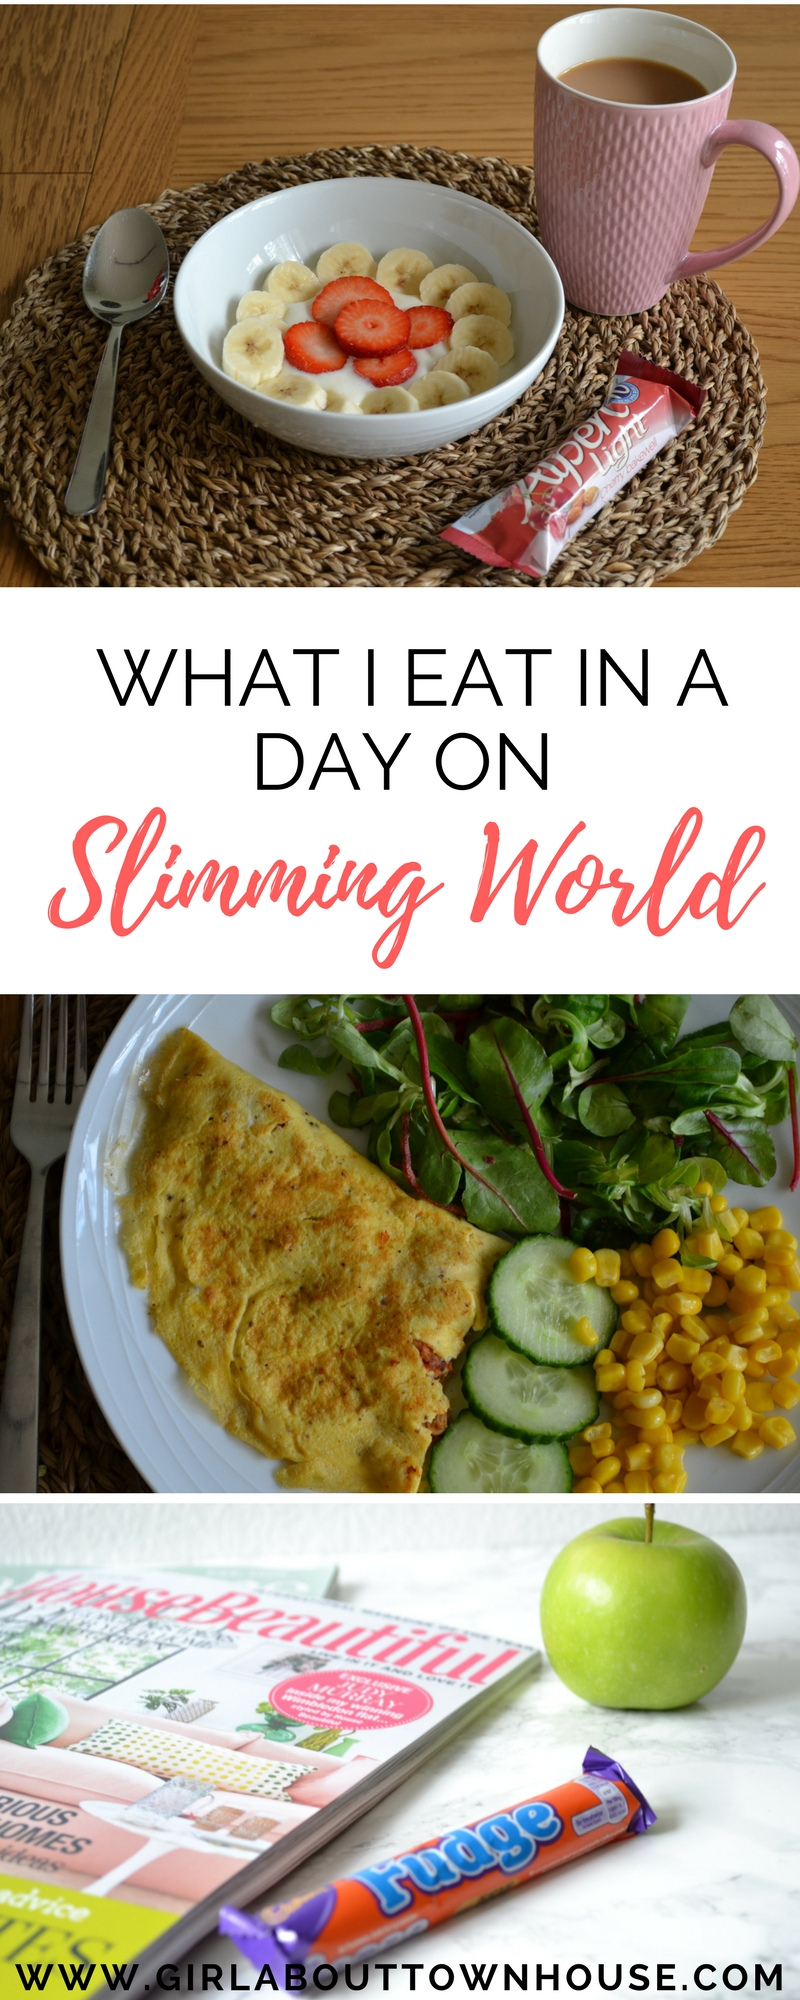 What I Eat In A Day On The Slimming World Plan Girl